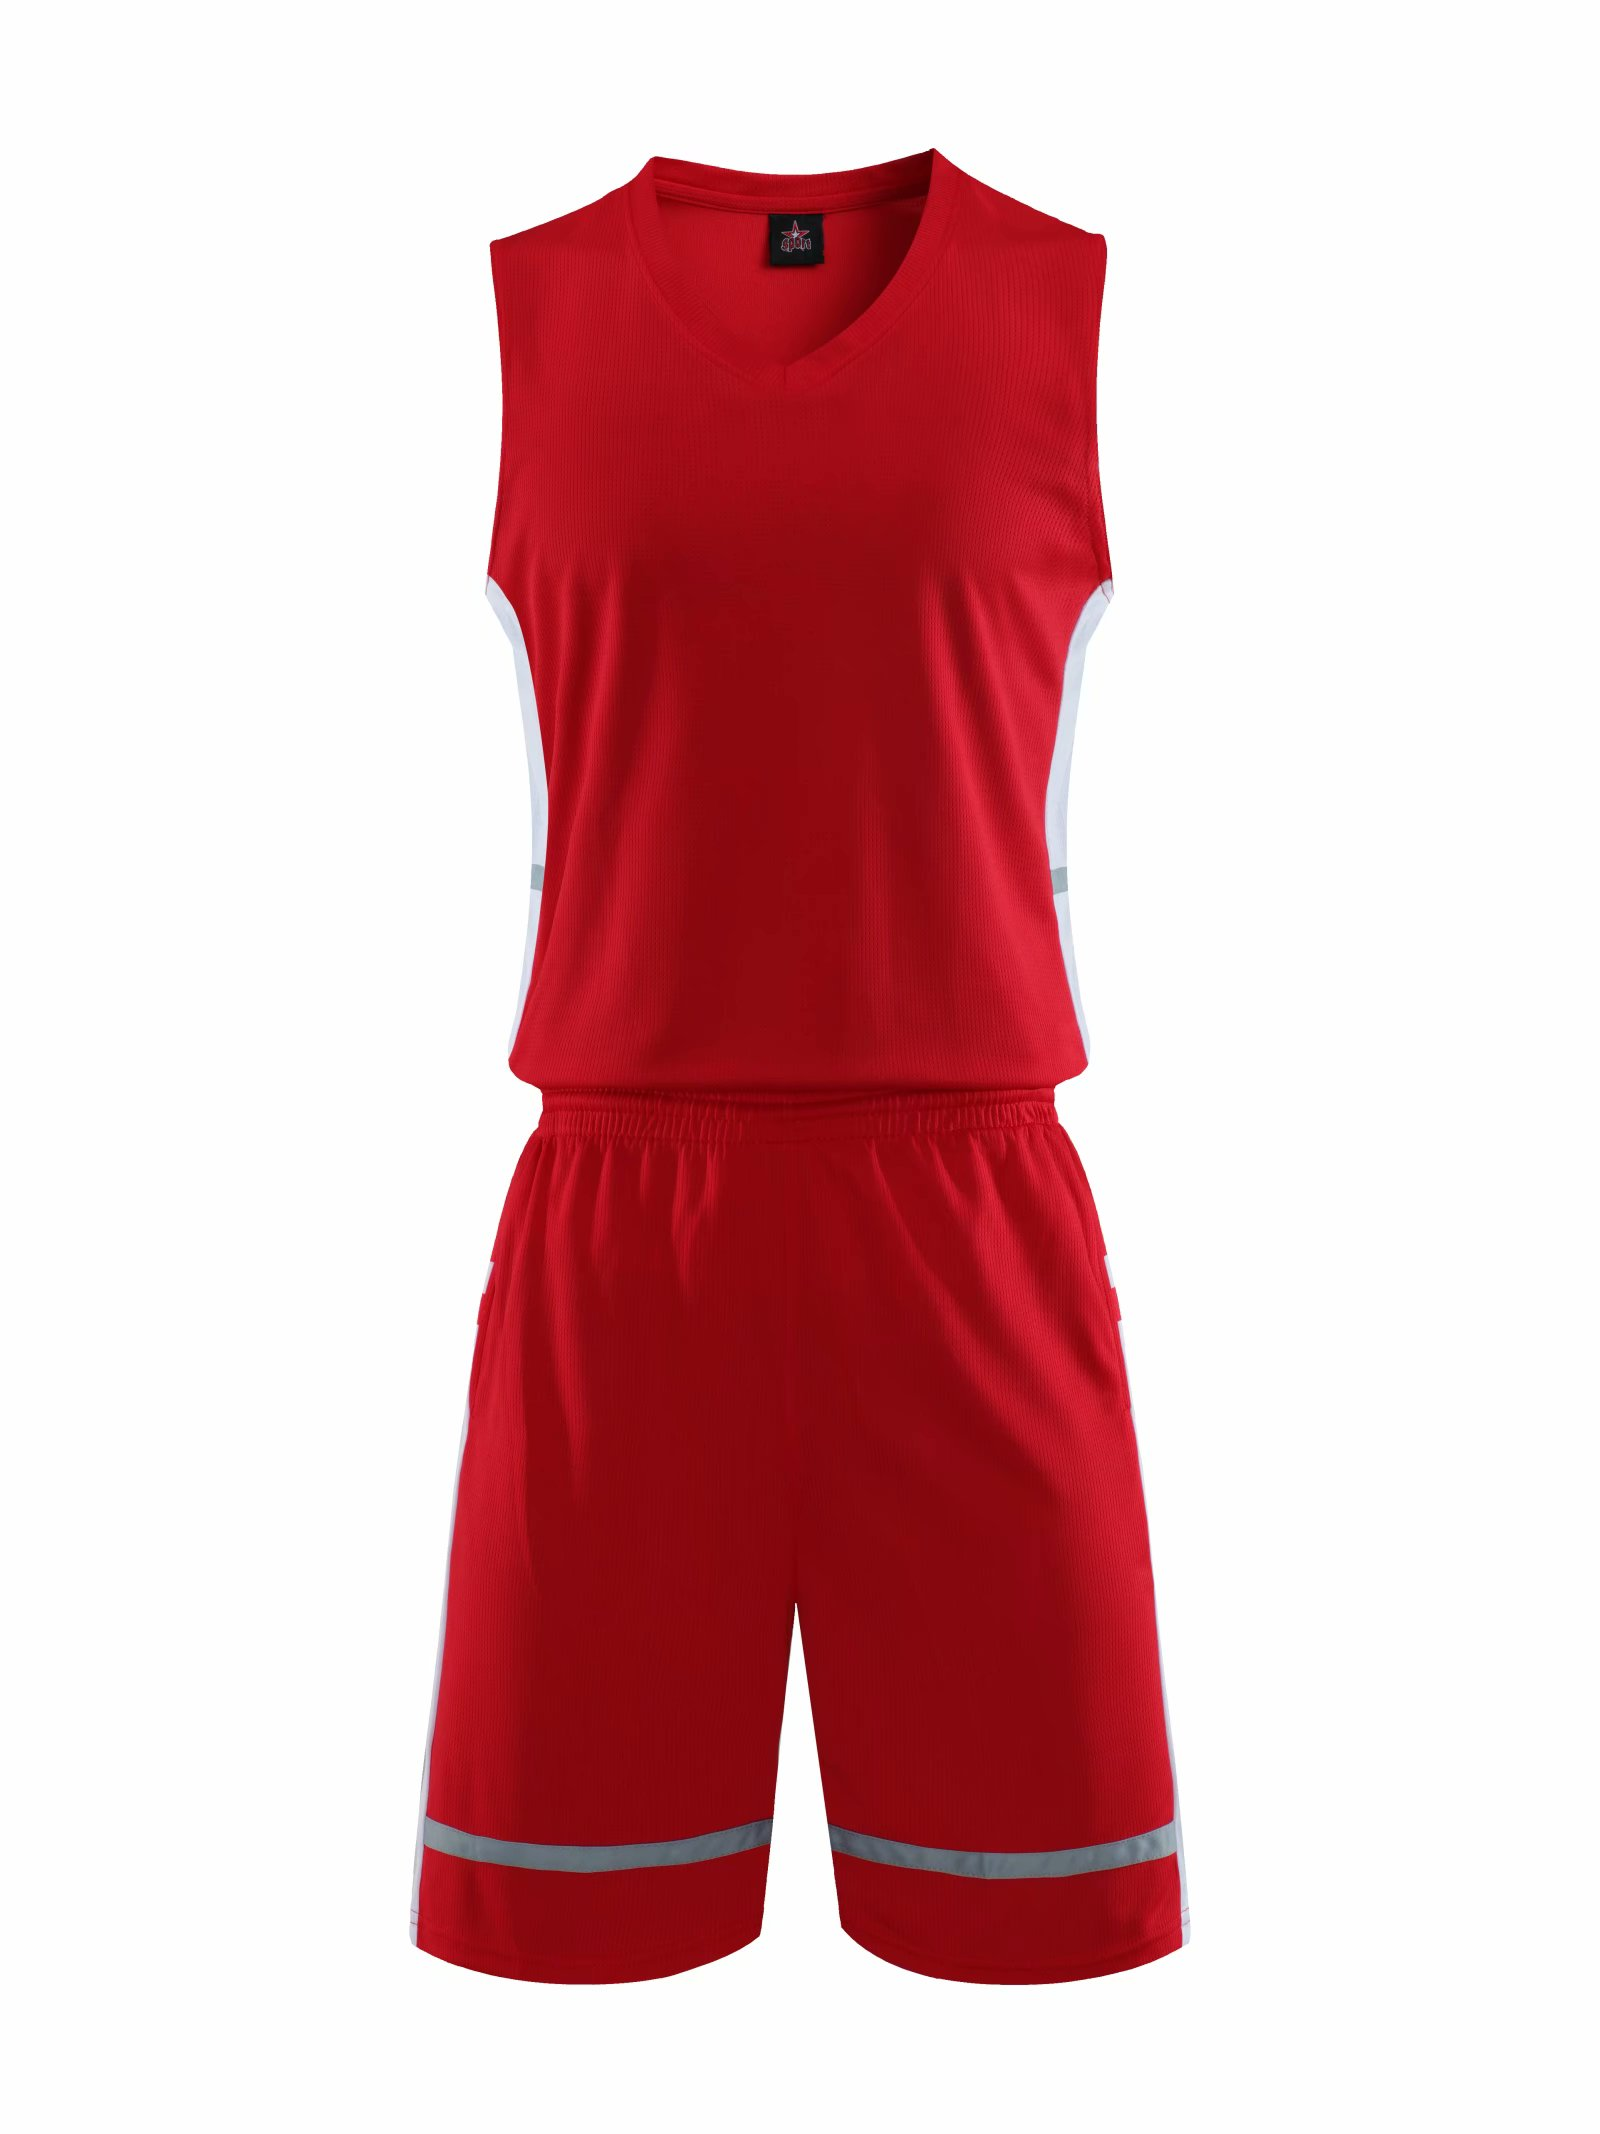 Lower Price with Trendy Classic Sports Suit Basketball Uniform Basketball Sportswear Casual Sports Suit Suit Size S-xxxl